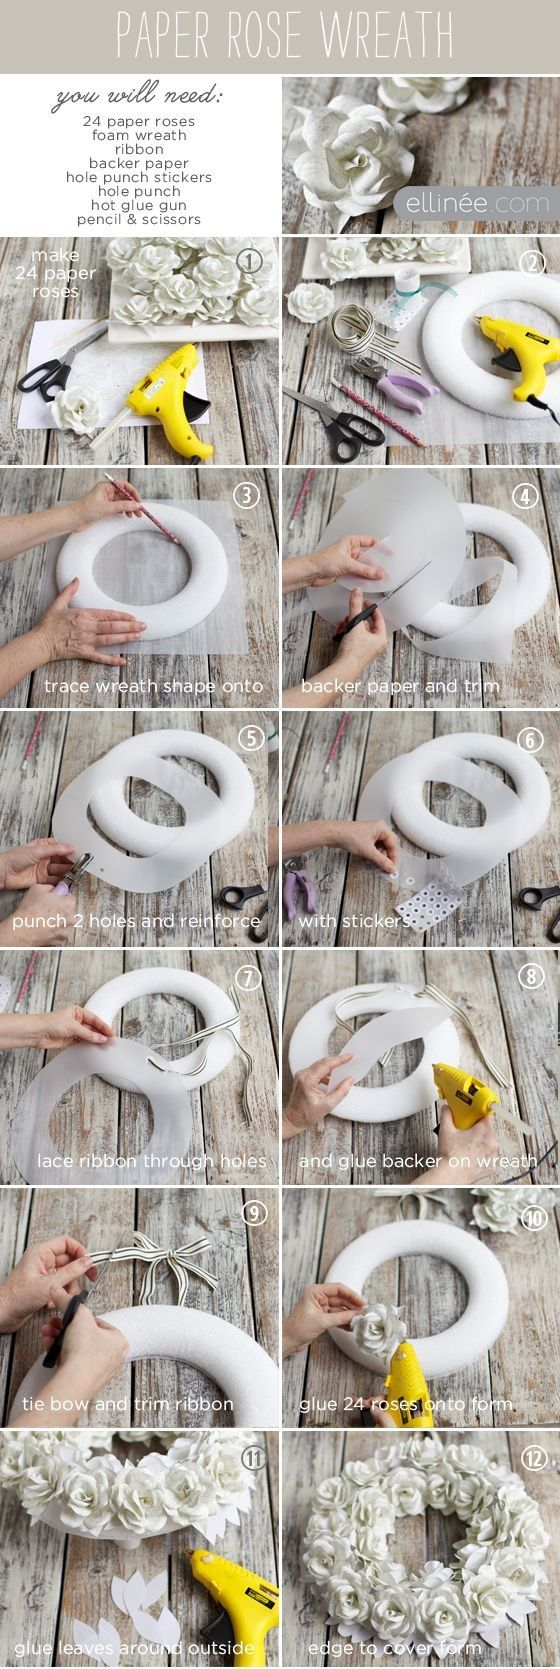 Tutorial of paper diy white roses wreath for home decoration - door hanger, paper roses crafts